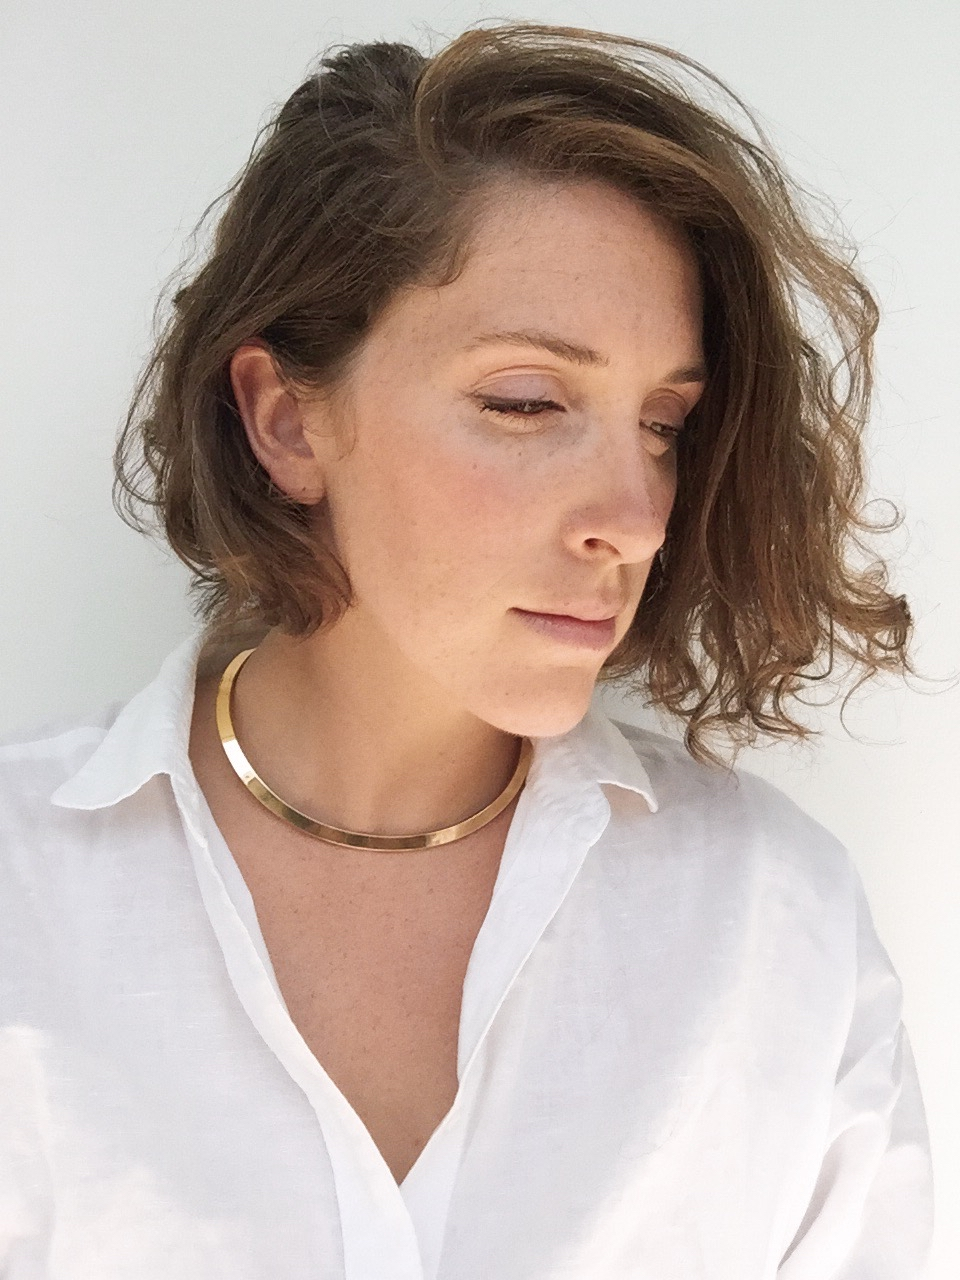 Curly haired woman in white linen and minimalist gold choker